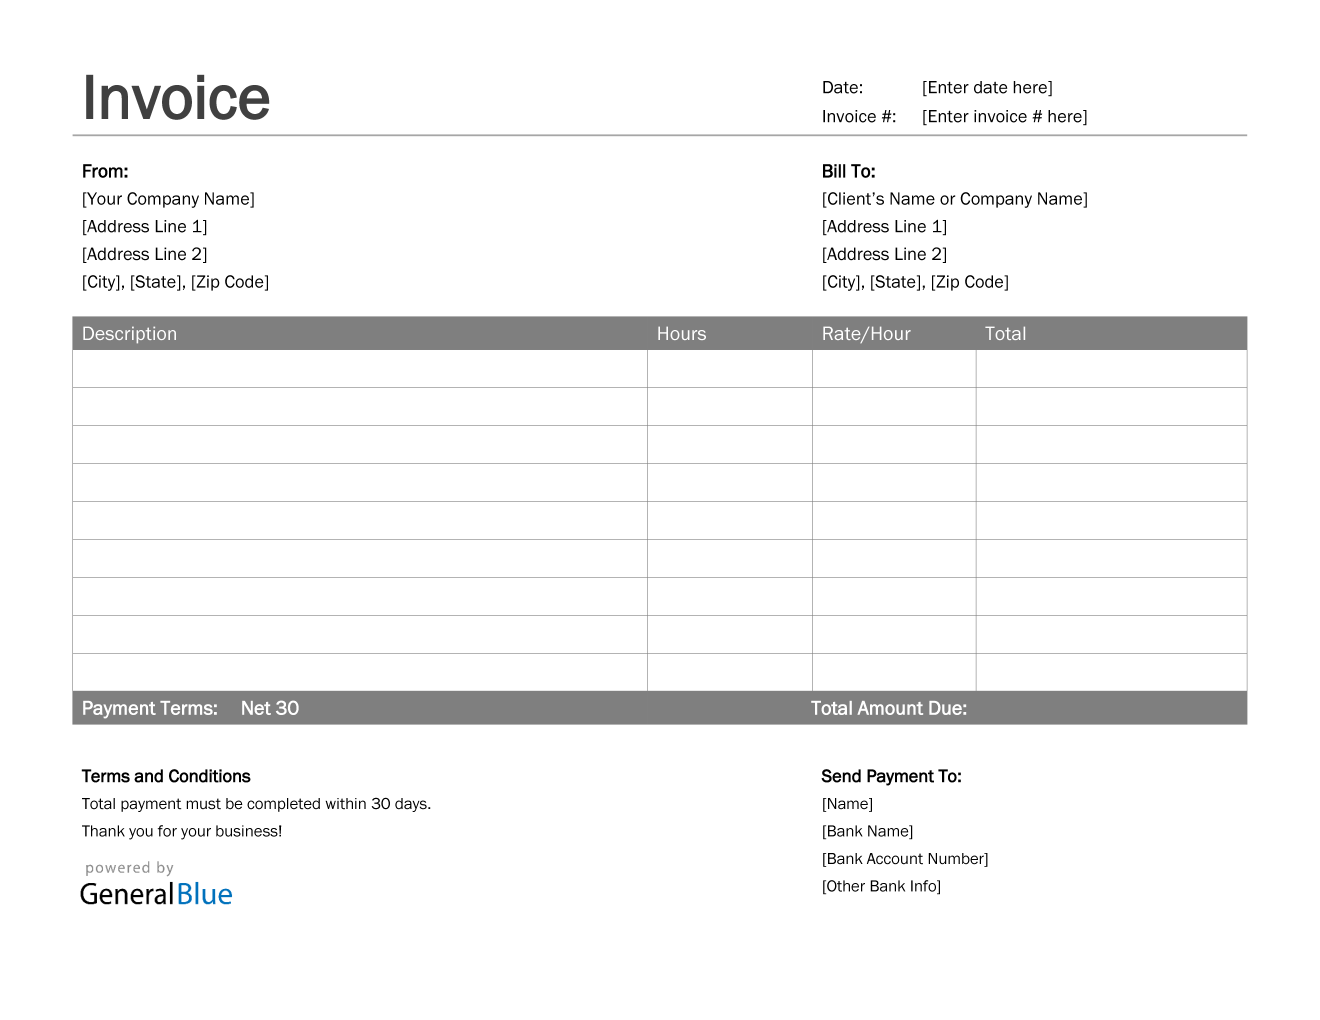 Invoice Template for U.S. Freelancers in Word (Basic)